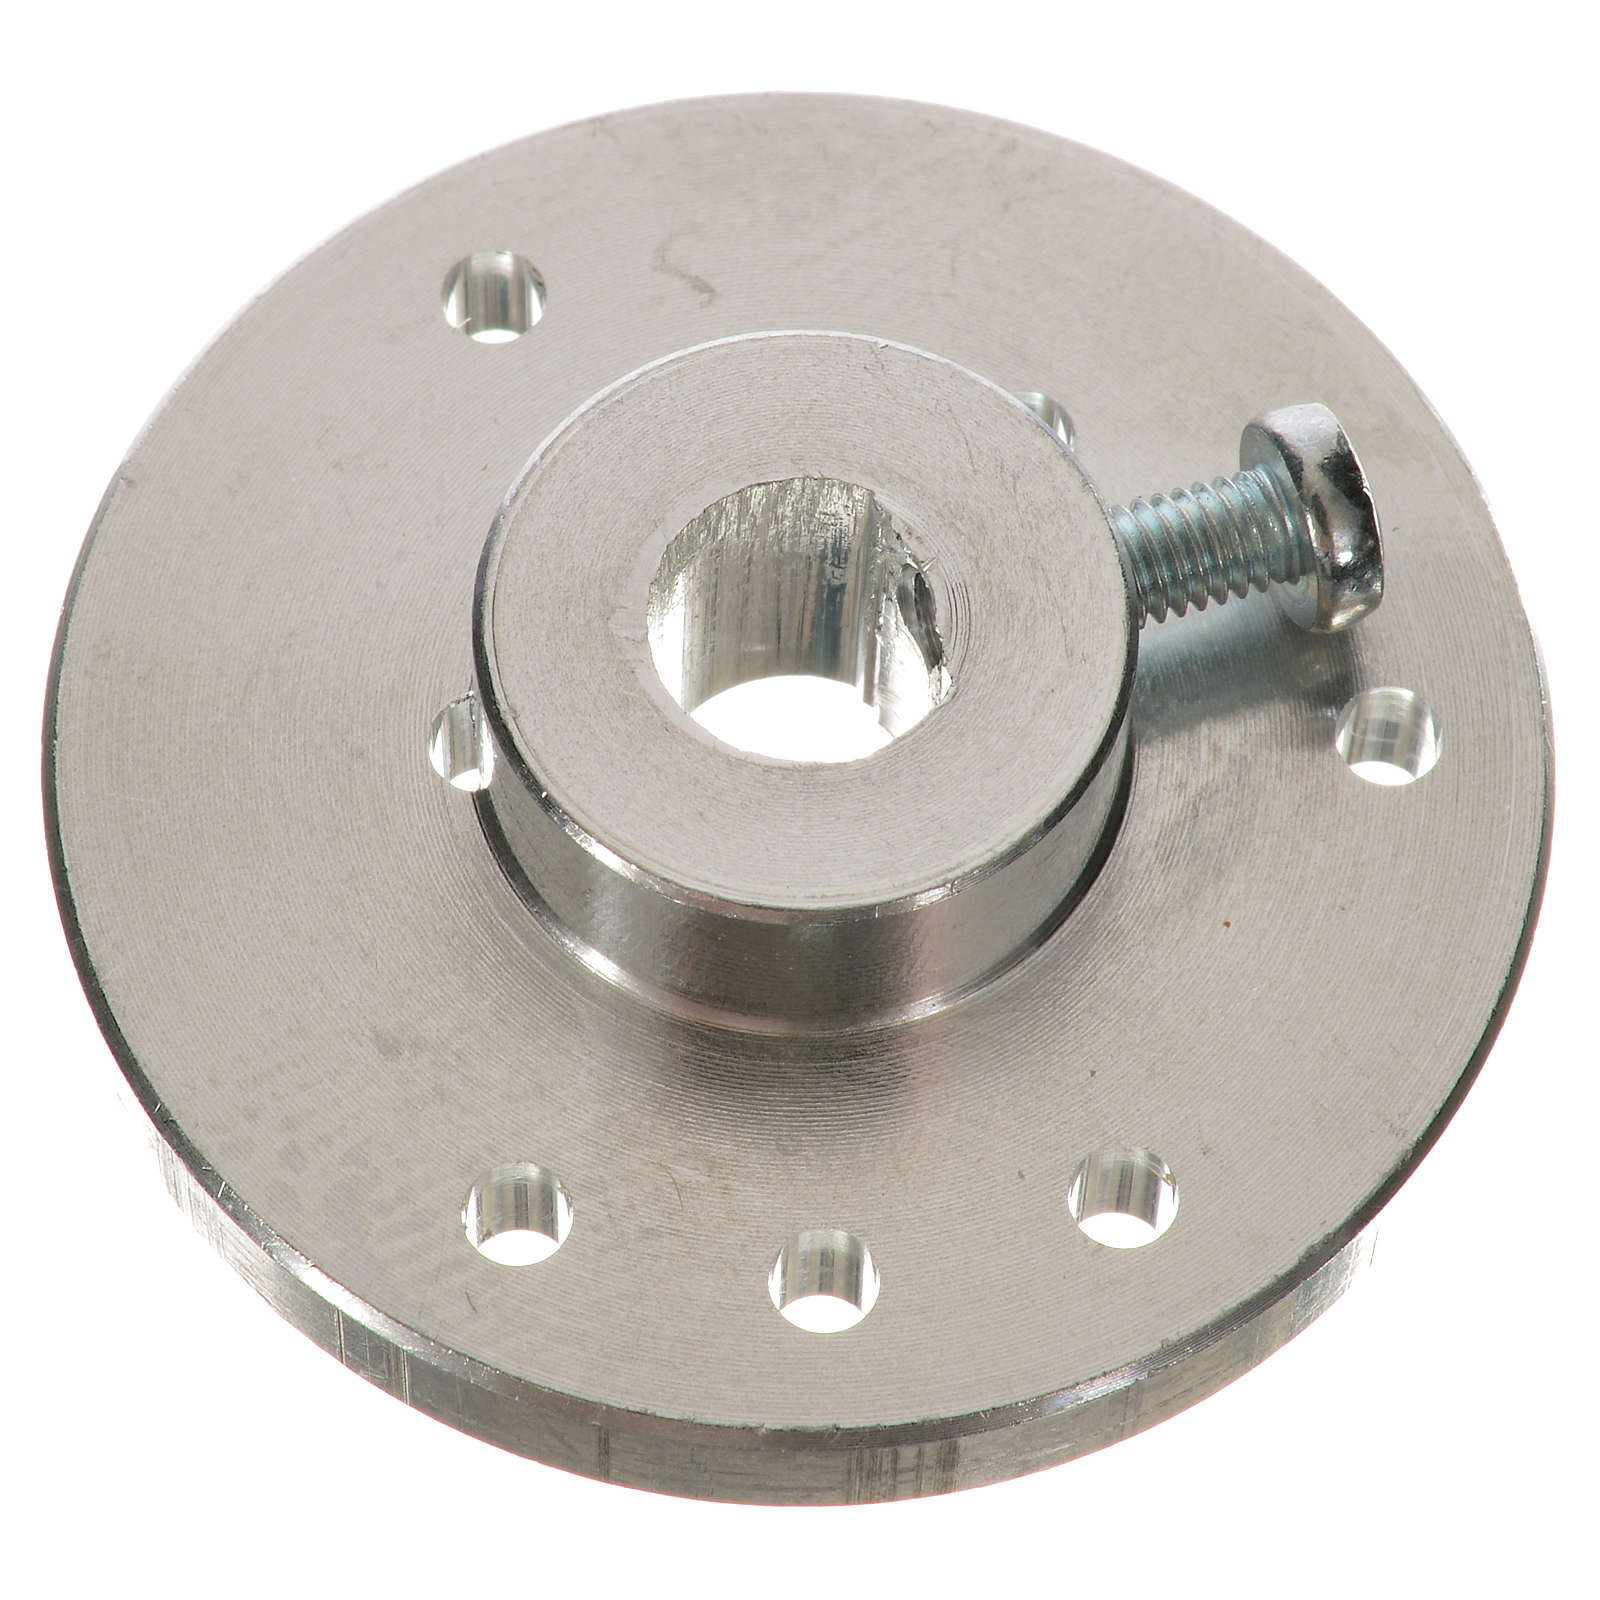 Nativity accessory, pulley for gear motor for 7mm spindle ME 4